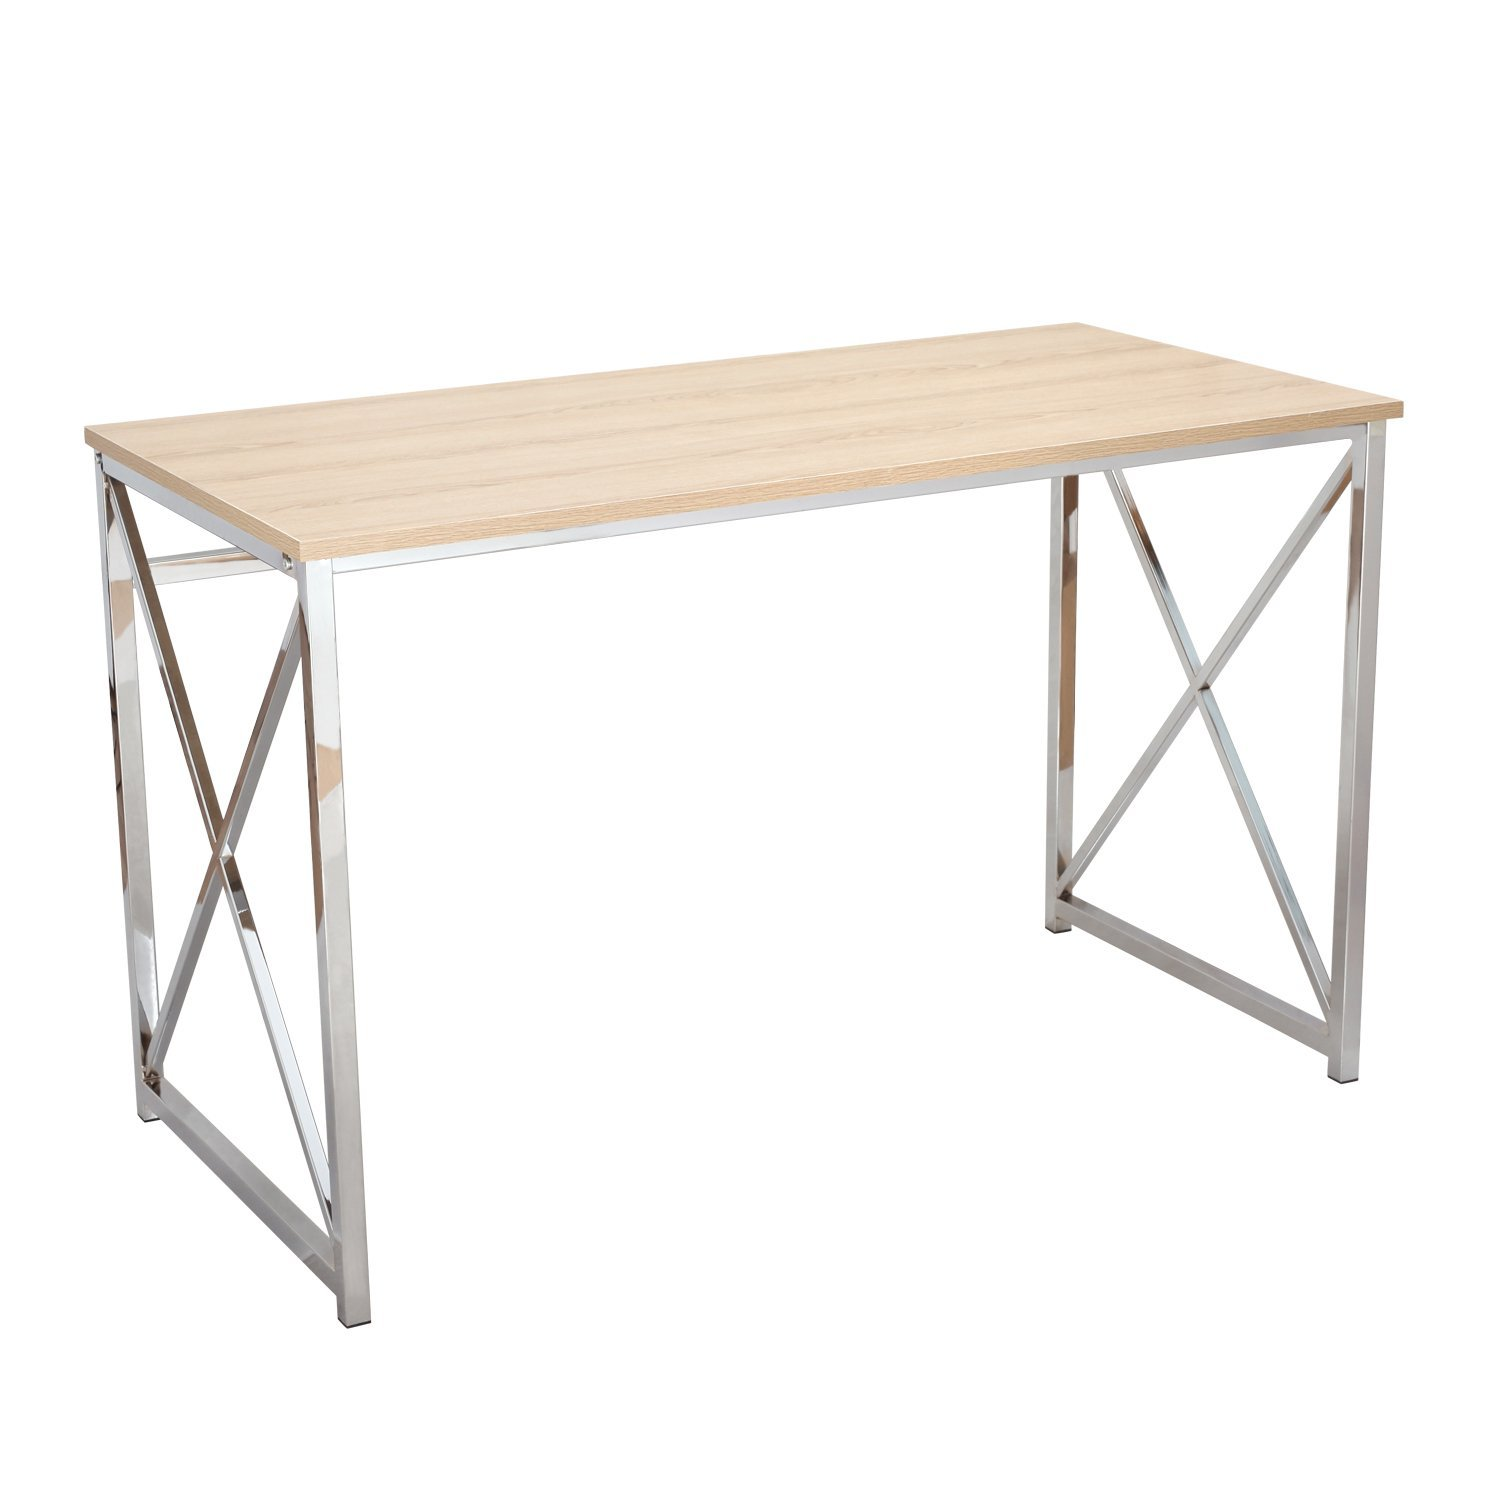 """Homebeez Computer/Office/Home Desk 48""""x24"""" with Wooden Style Top Chrome Metal Legs Studying Writing Table"""